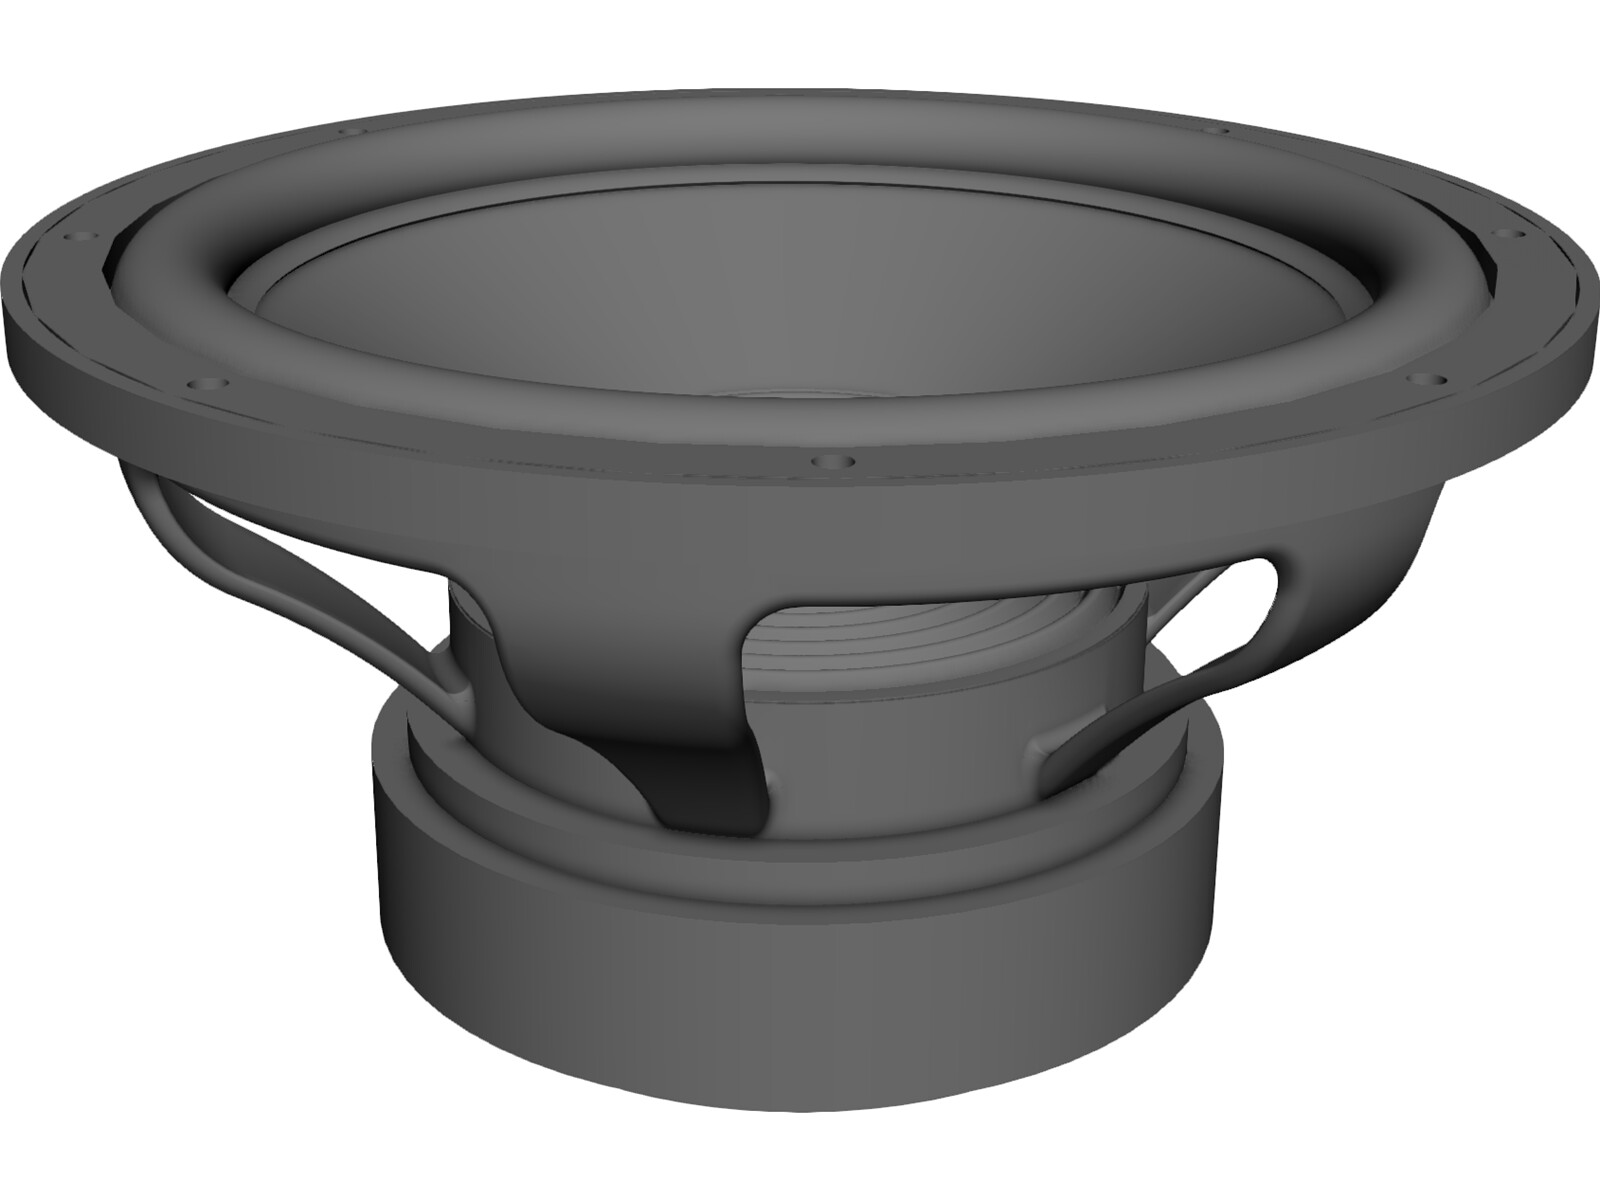 Subwoofer Bass Driver 12 inch 3D CAD Model